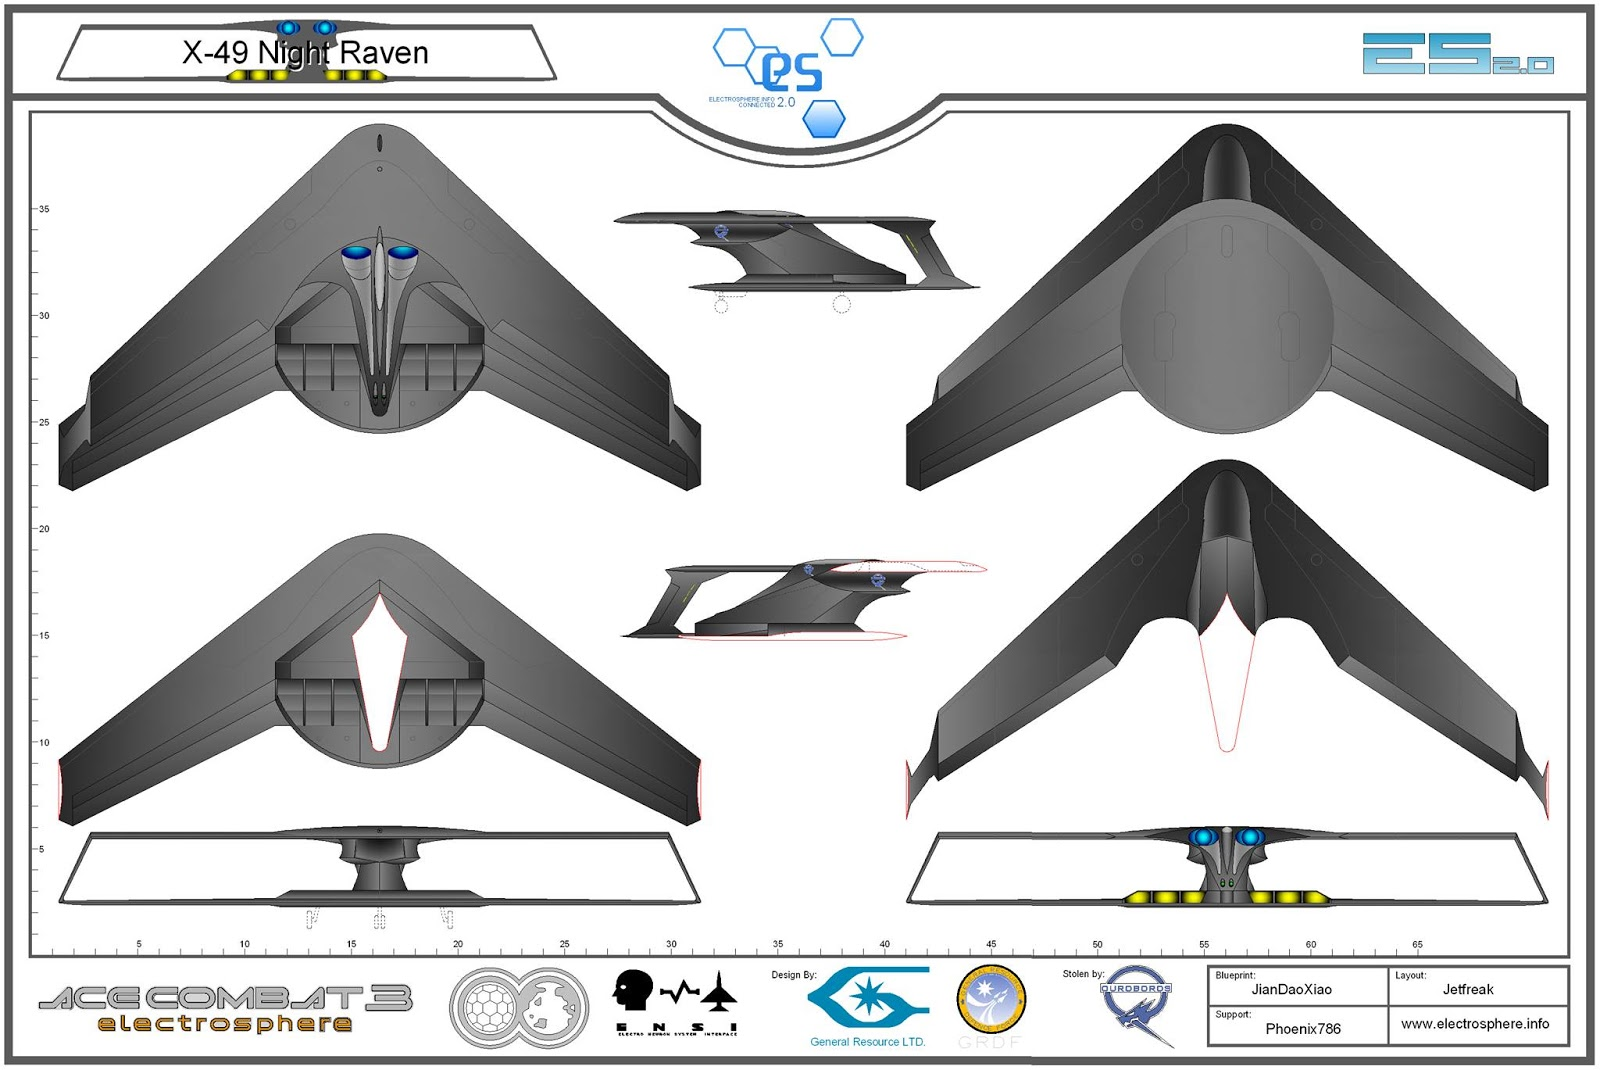 Ace combat model drawings x 49 night raven x 49 night raven drawings by me malvernweather Image collections